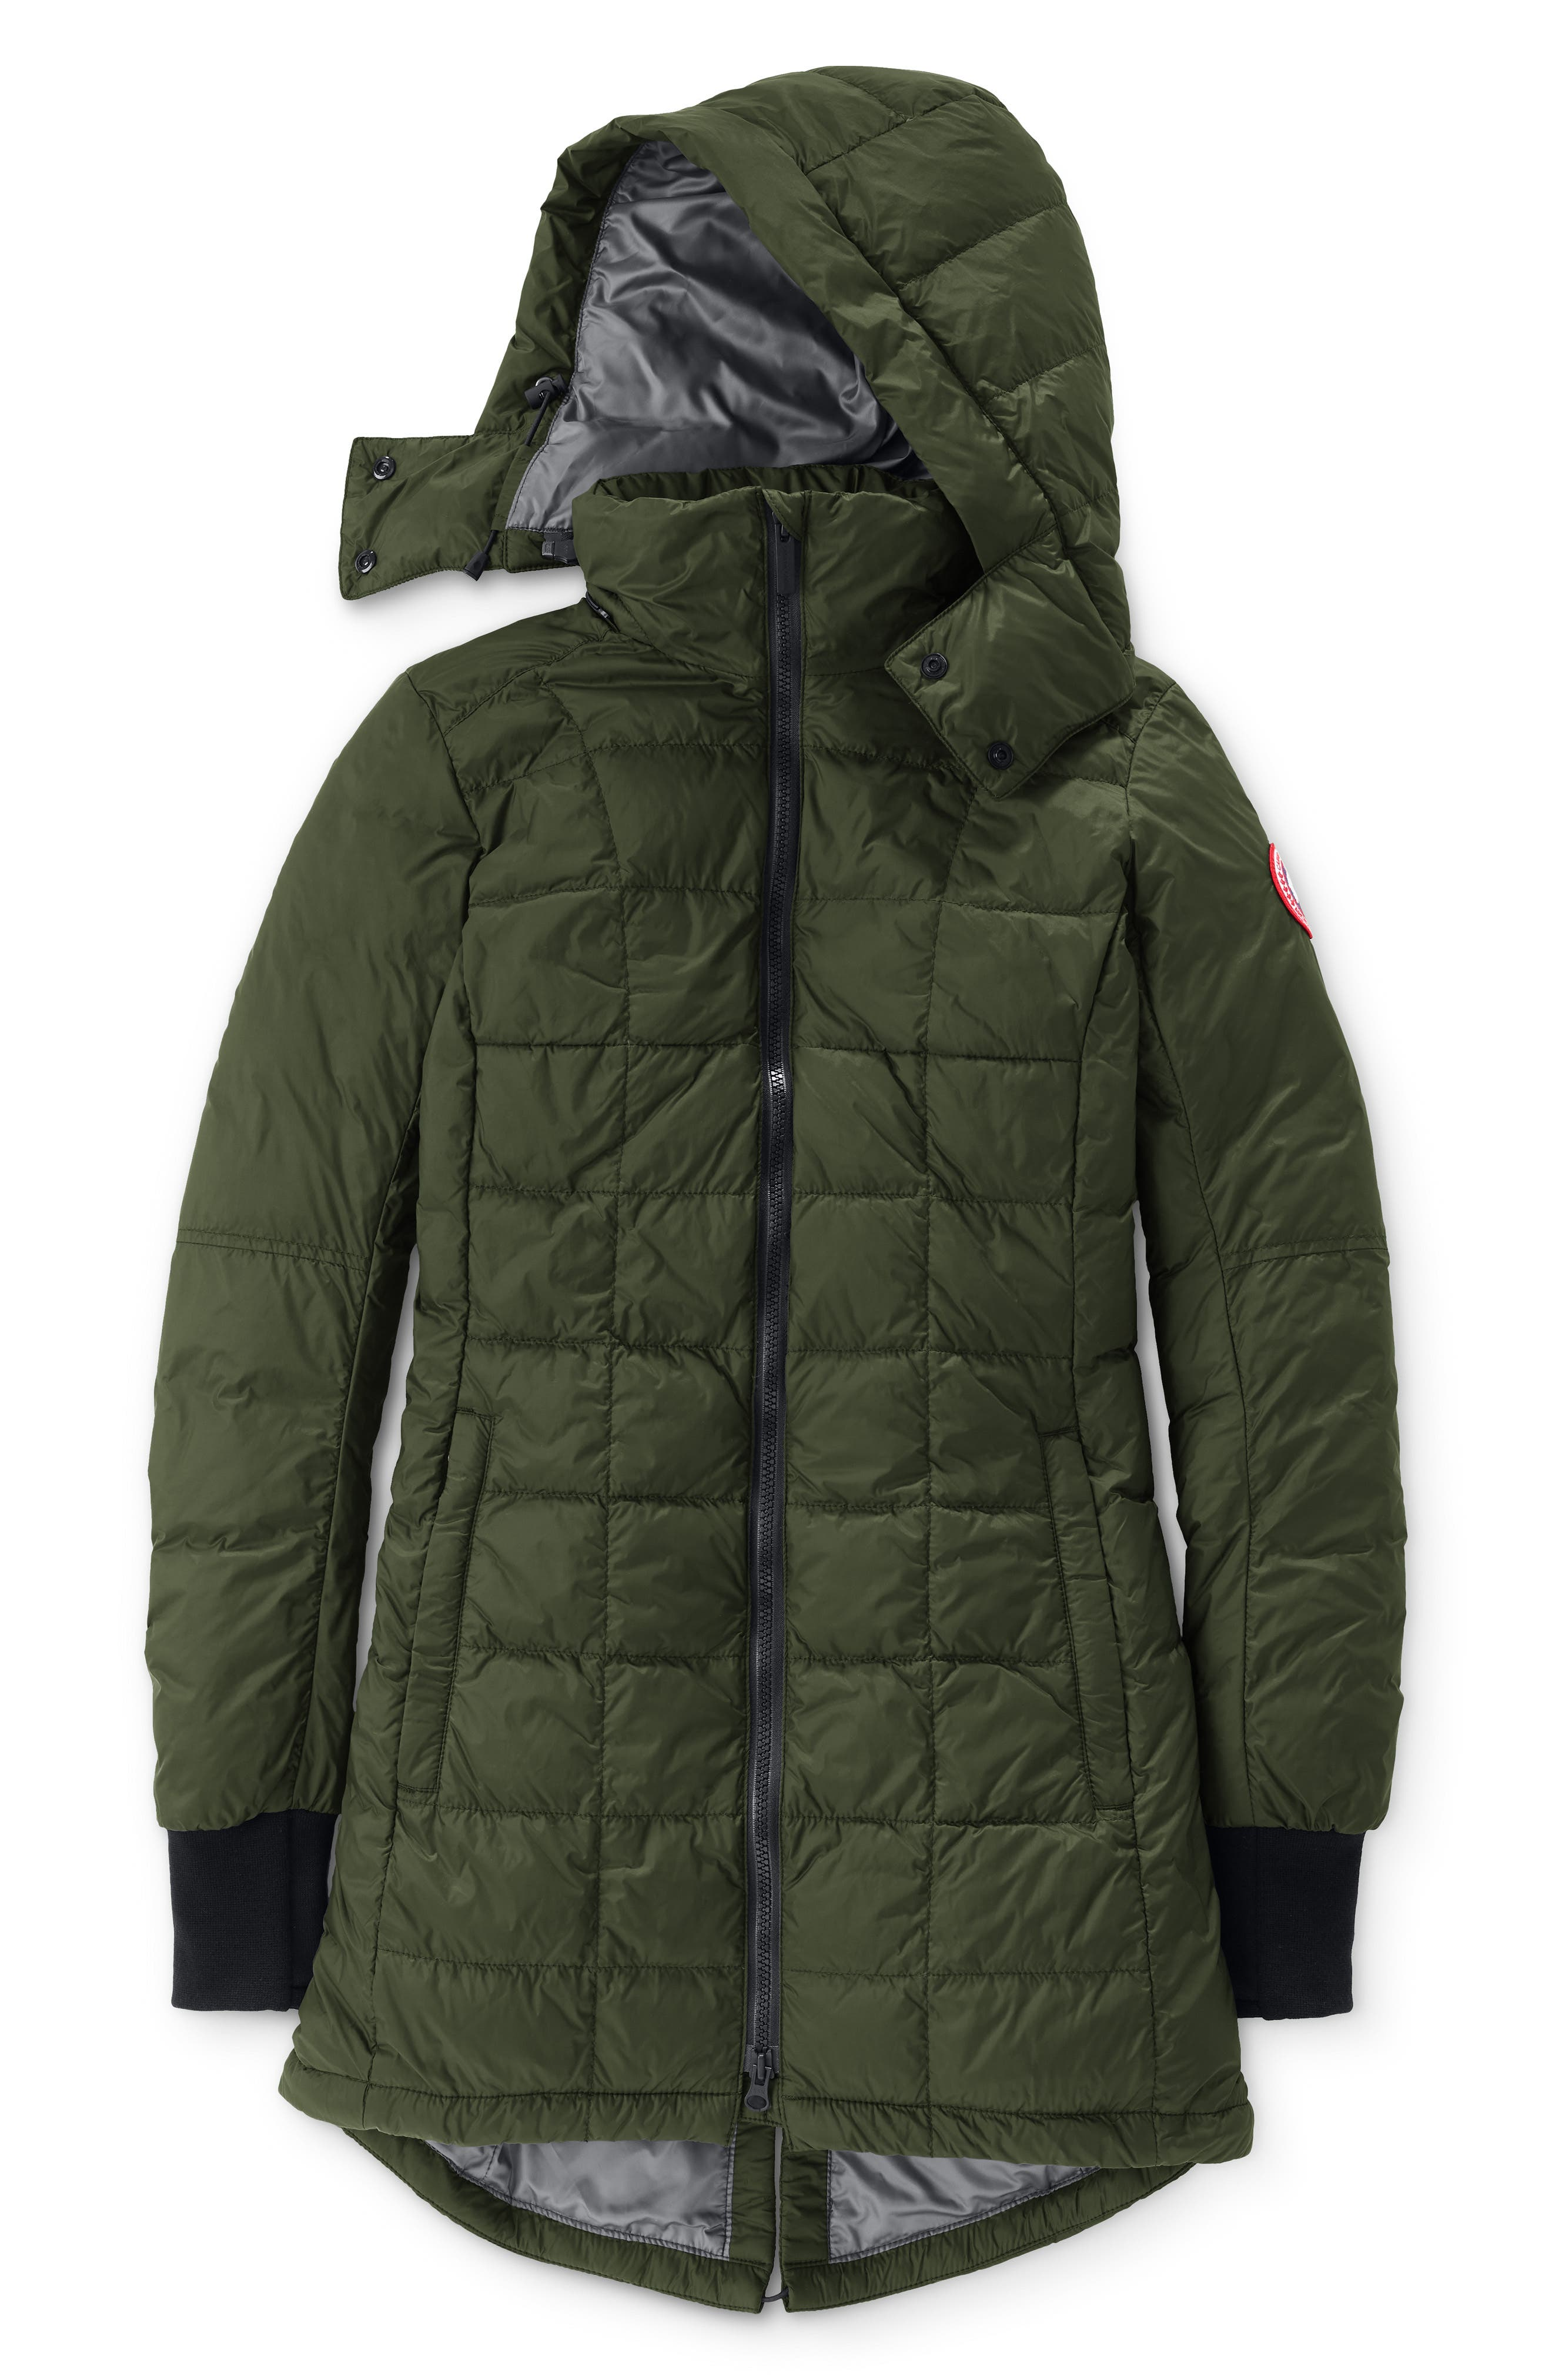 Canada Goose Ellison Packable Down Jacket, (0) - Green